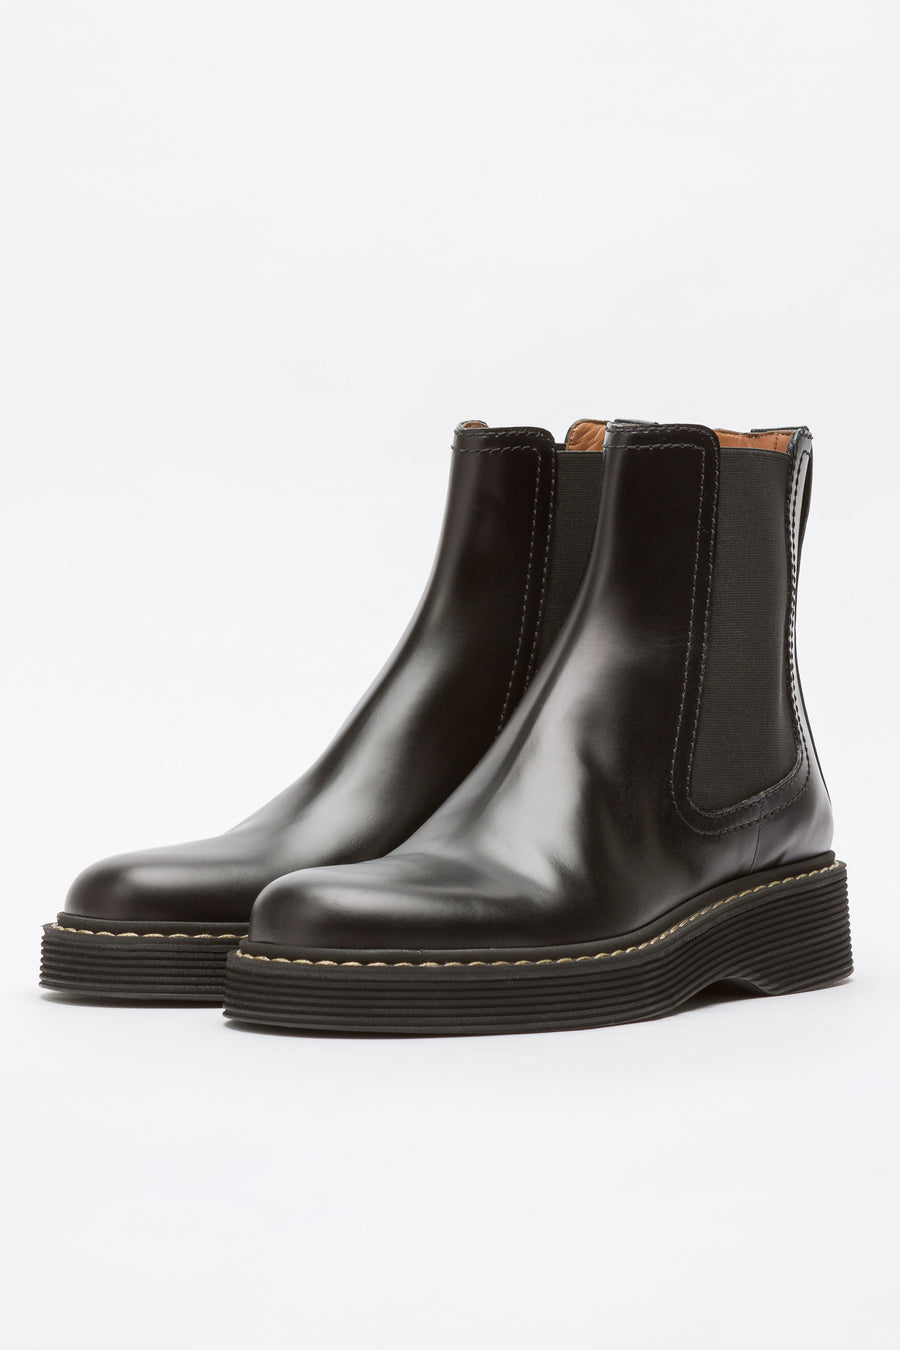 Marni Chelsea Boots in Black - Notre